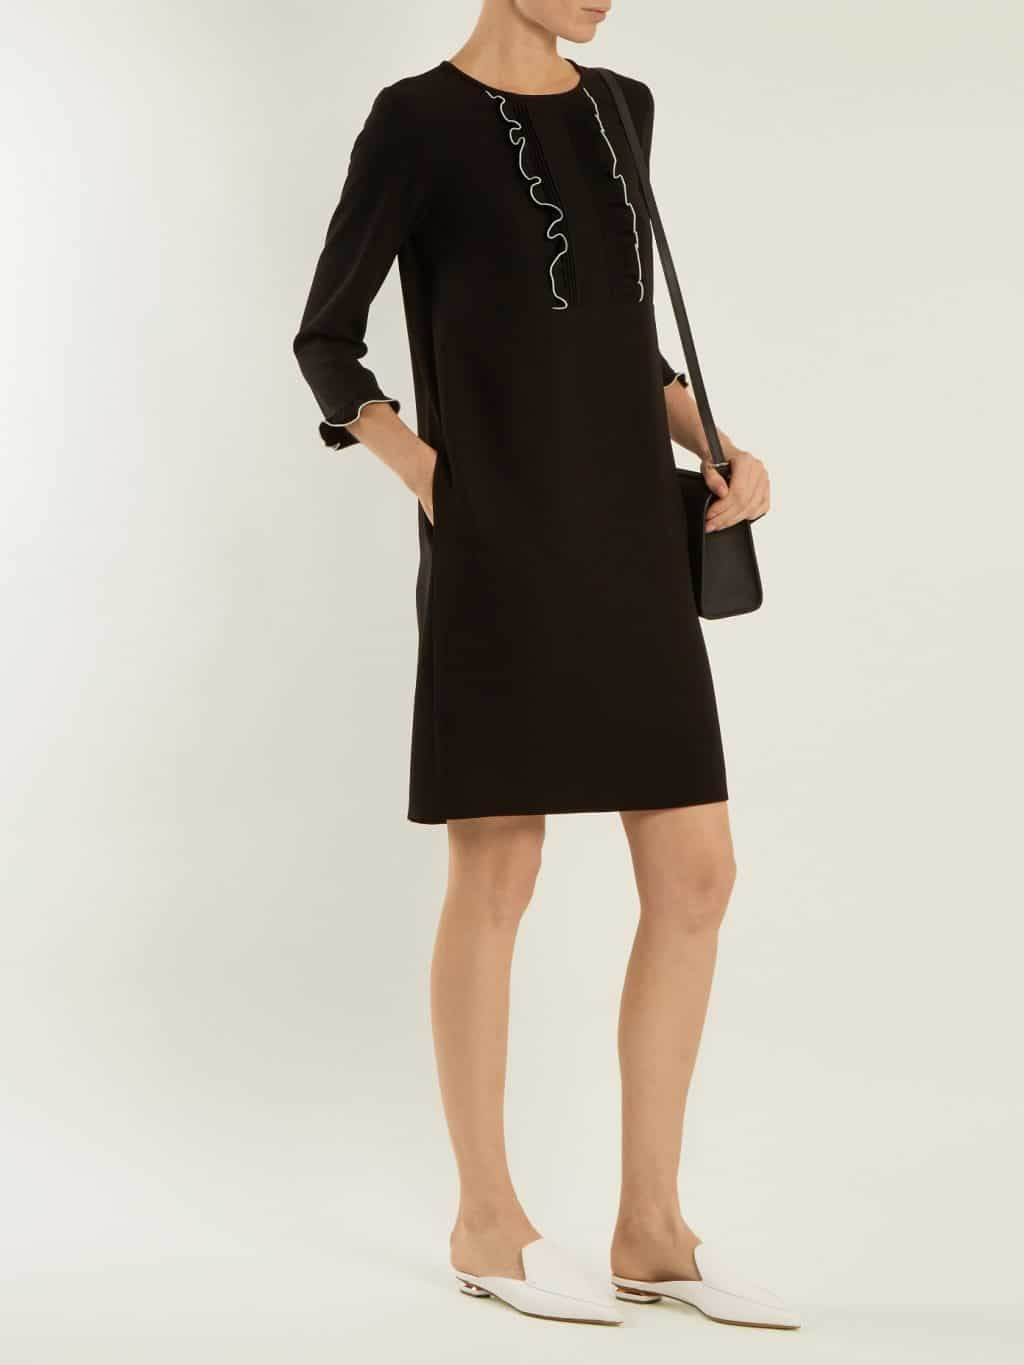 aacc89c10cf WEEKEND MAX MARA Knut Black Dress - We Select Dresses